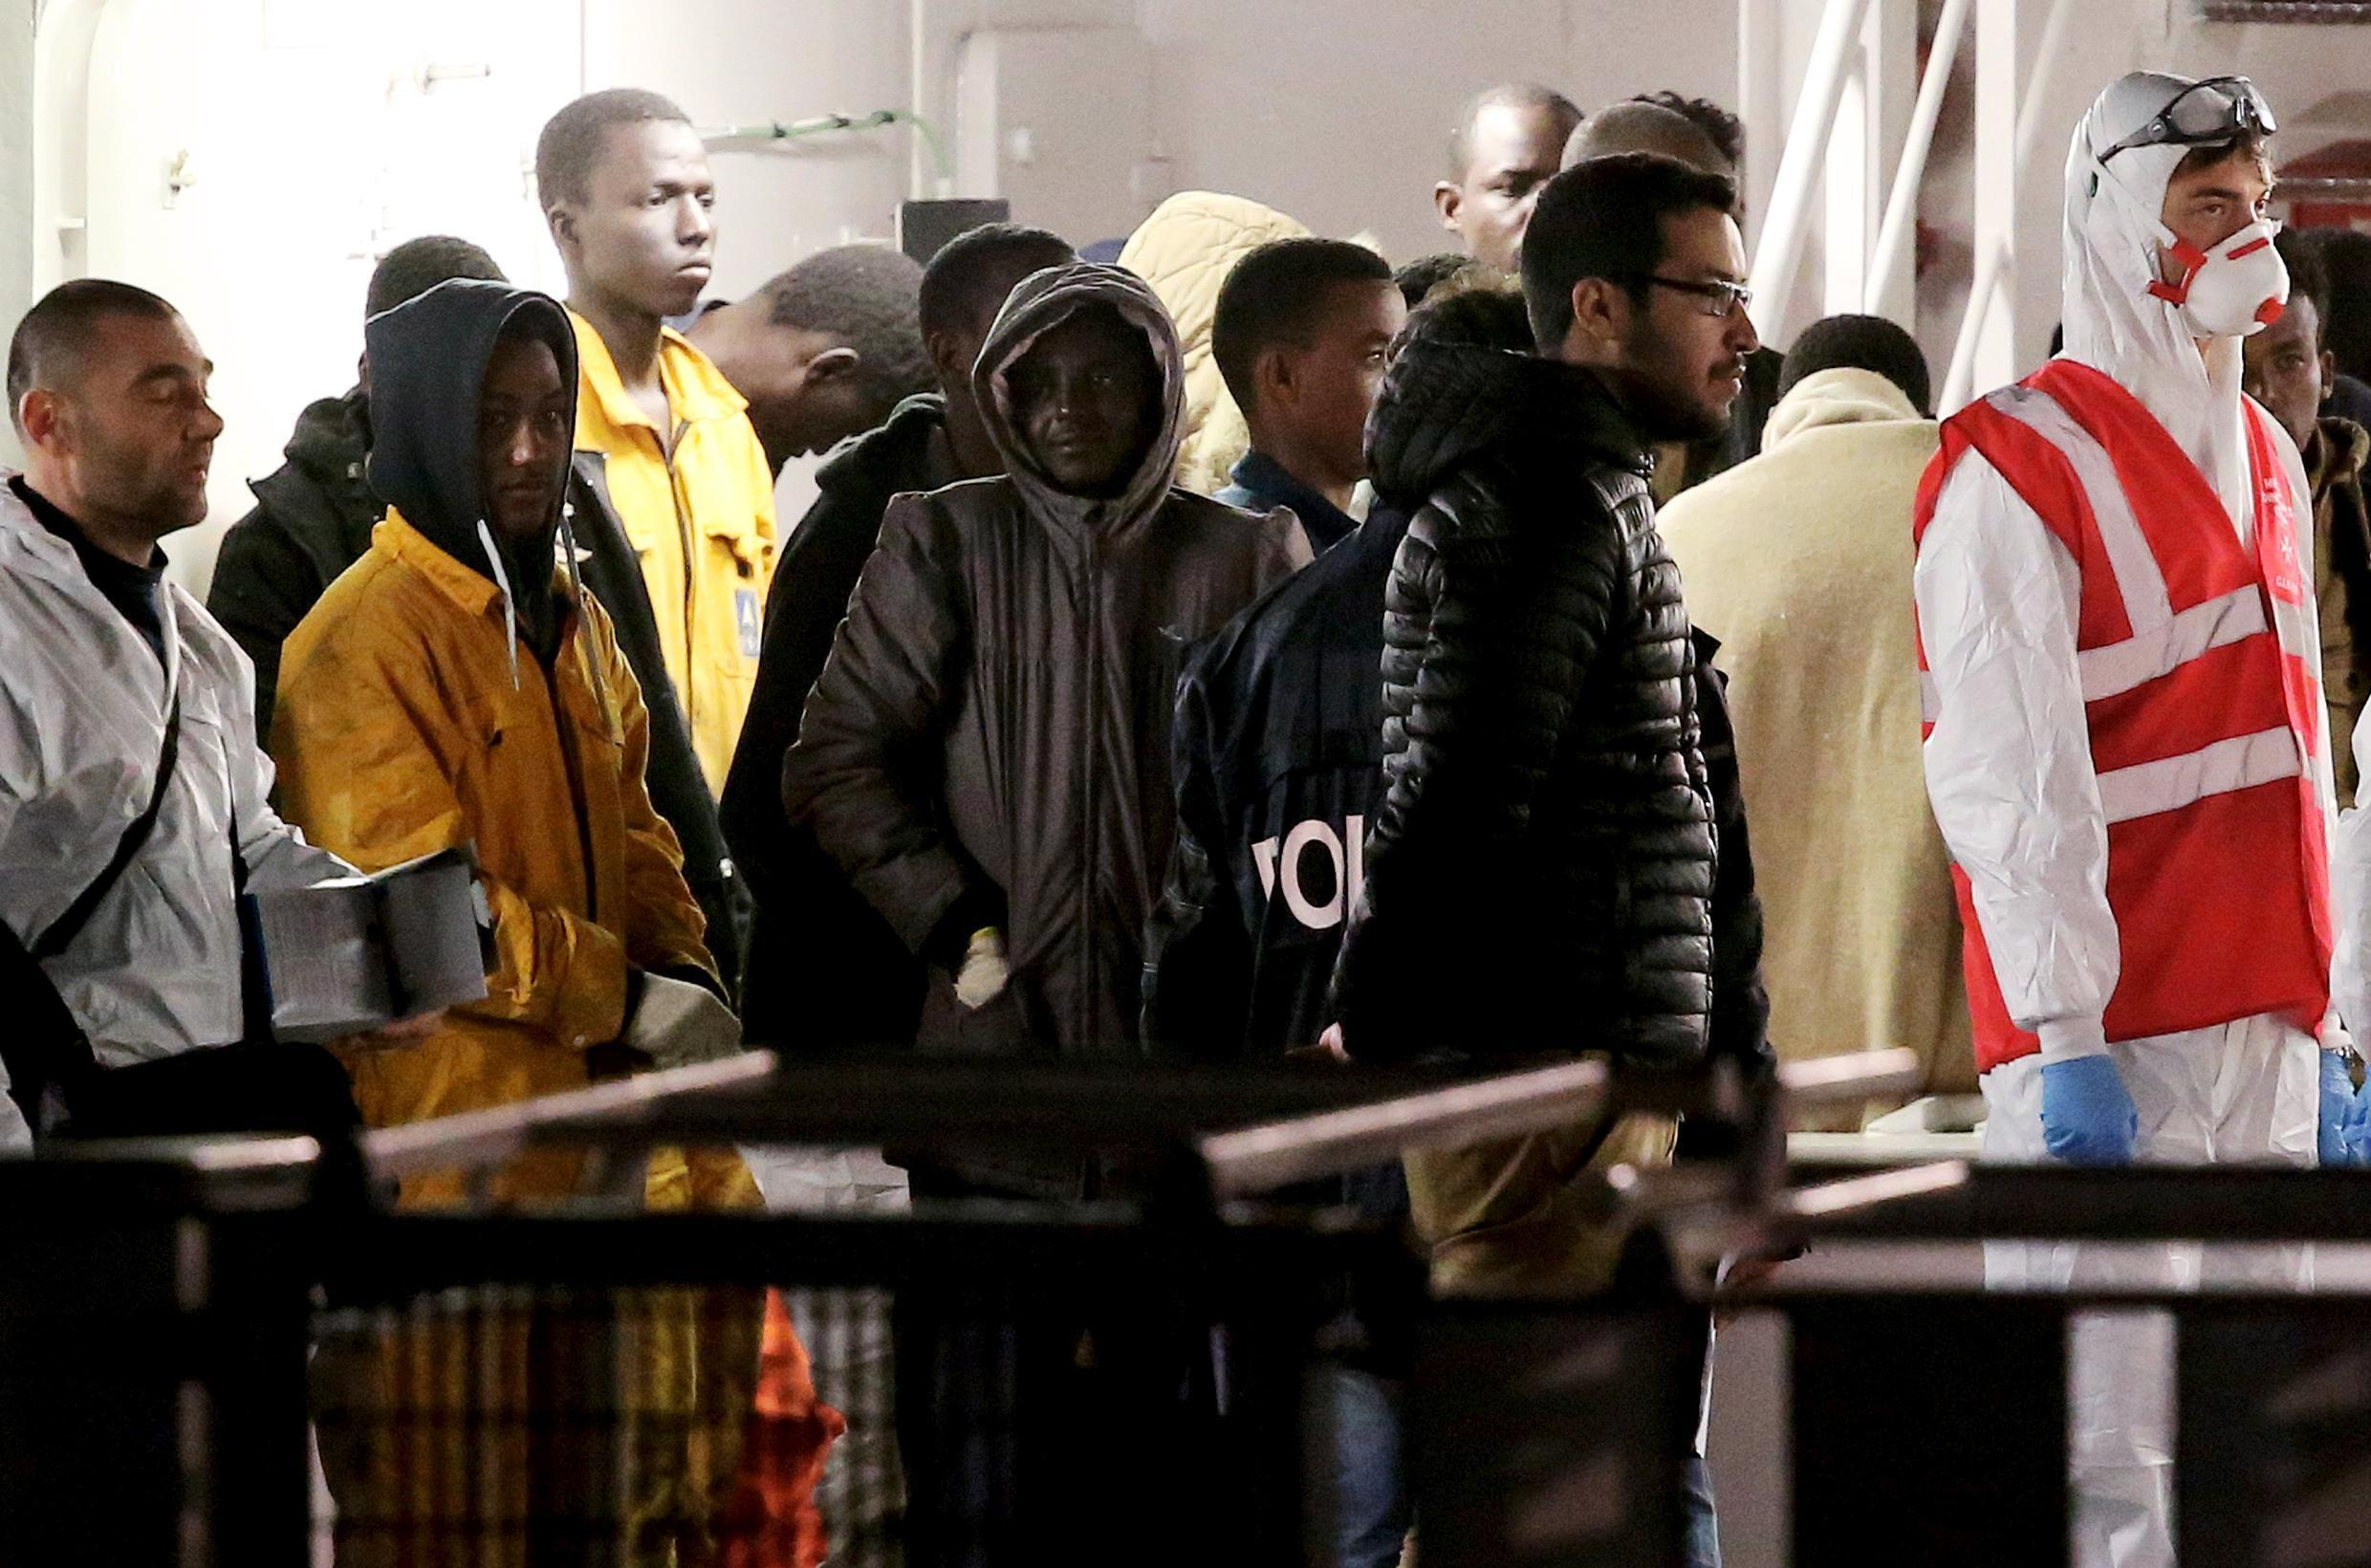 Survivors of the boat that capsized off the coast of Libya on Sunday arrive in Catania, Italy, 20 April 2015